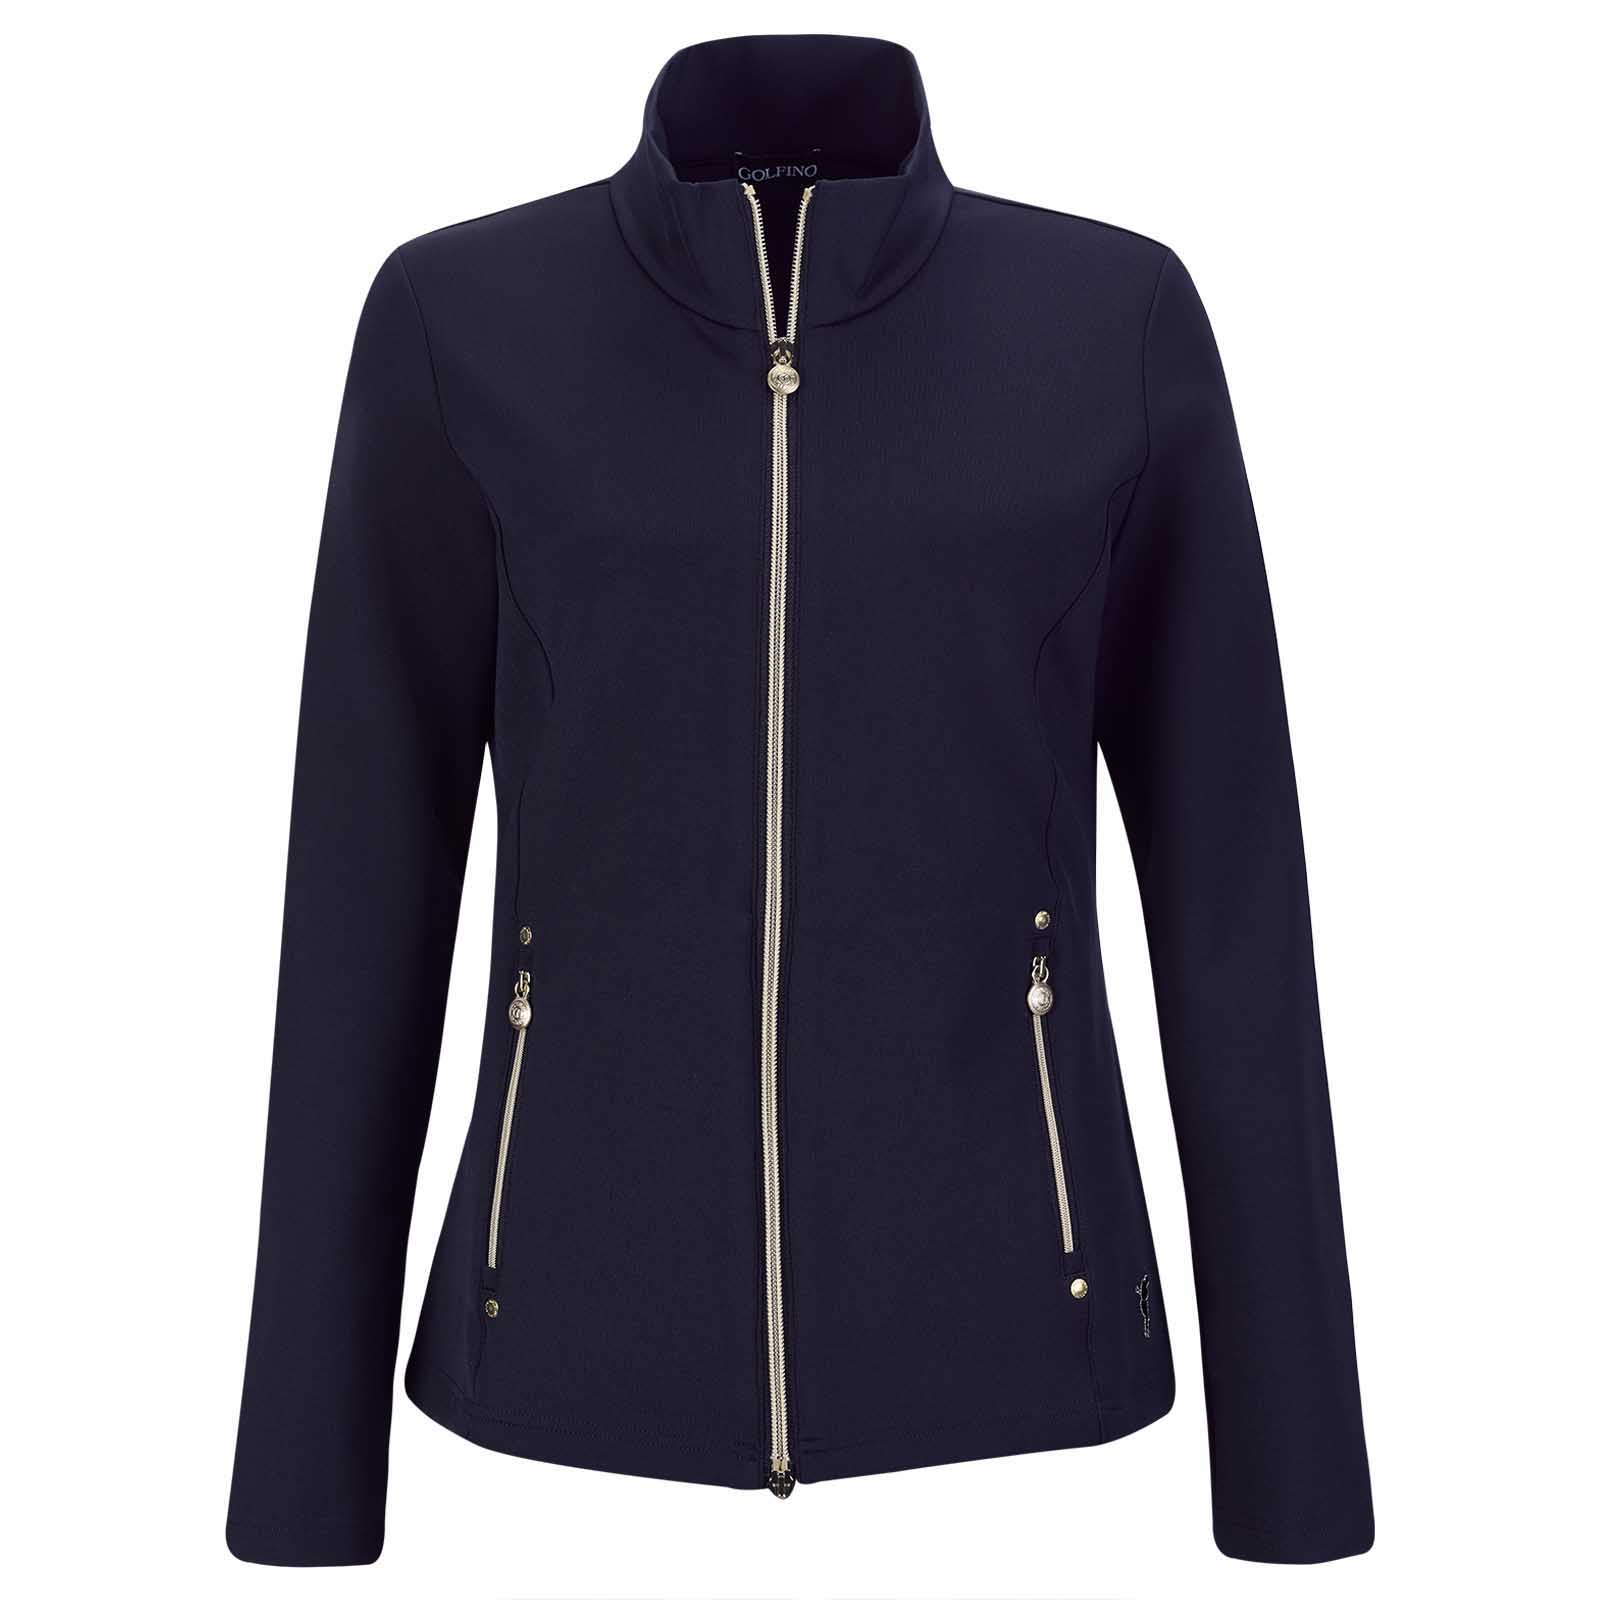 Ladies' mid-layer stretch golf jacket from cotton blend